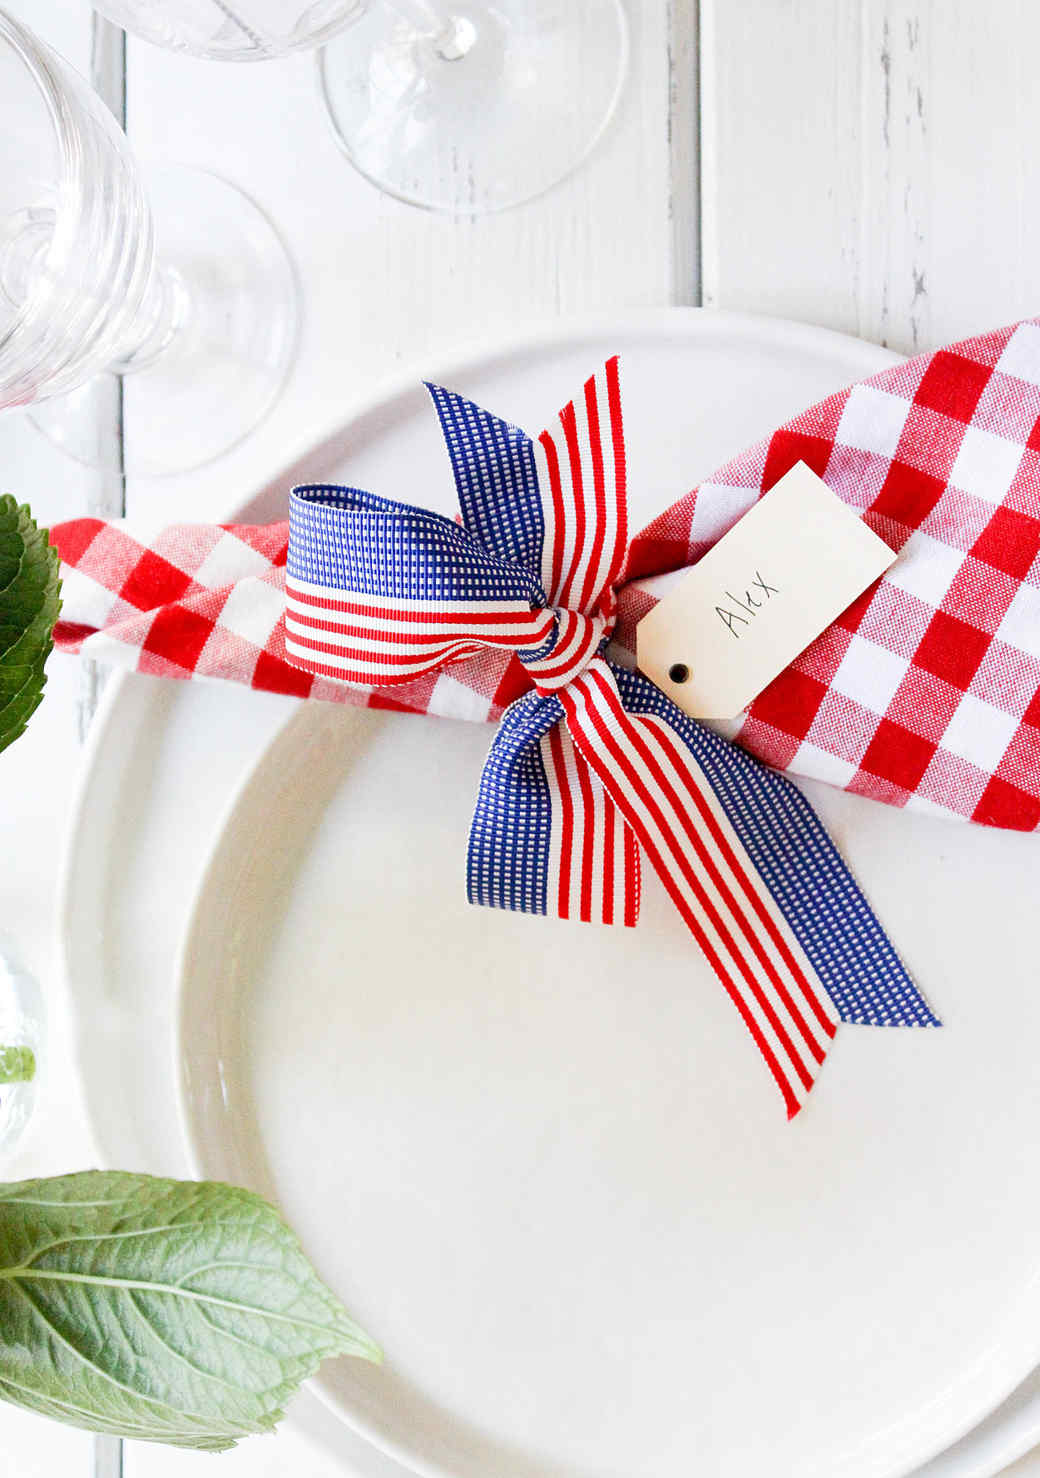 4 Simple Ideas for a 4th of July Americana Party